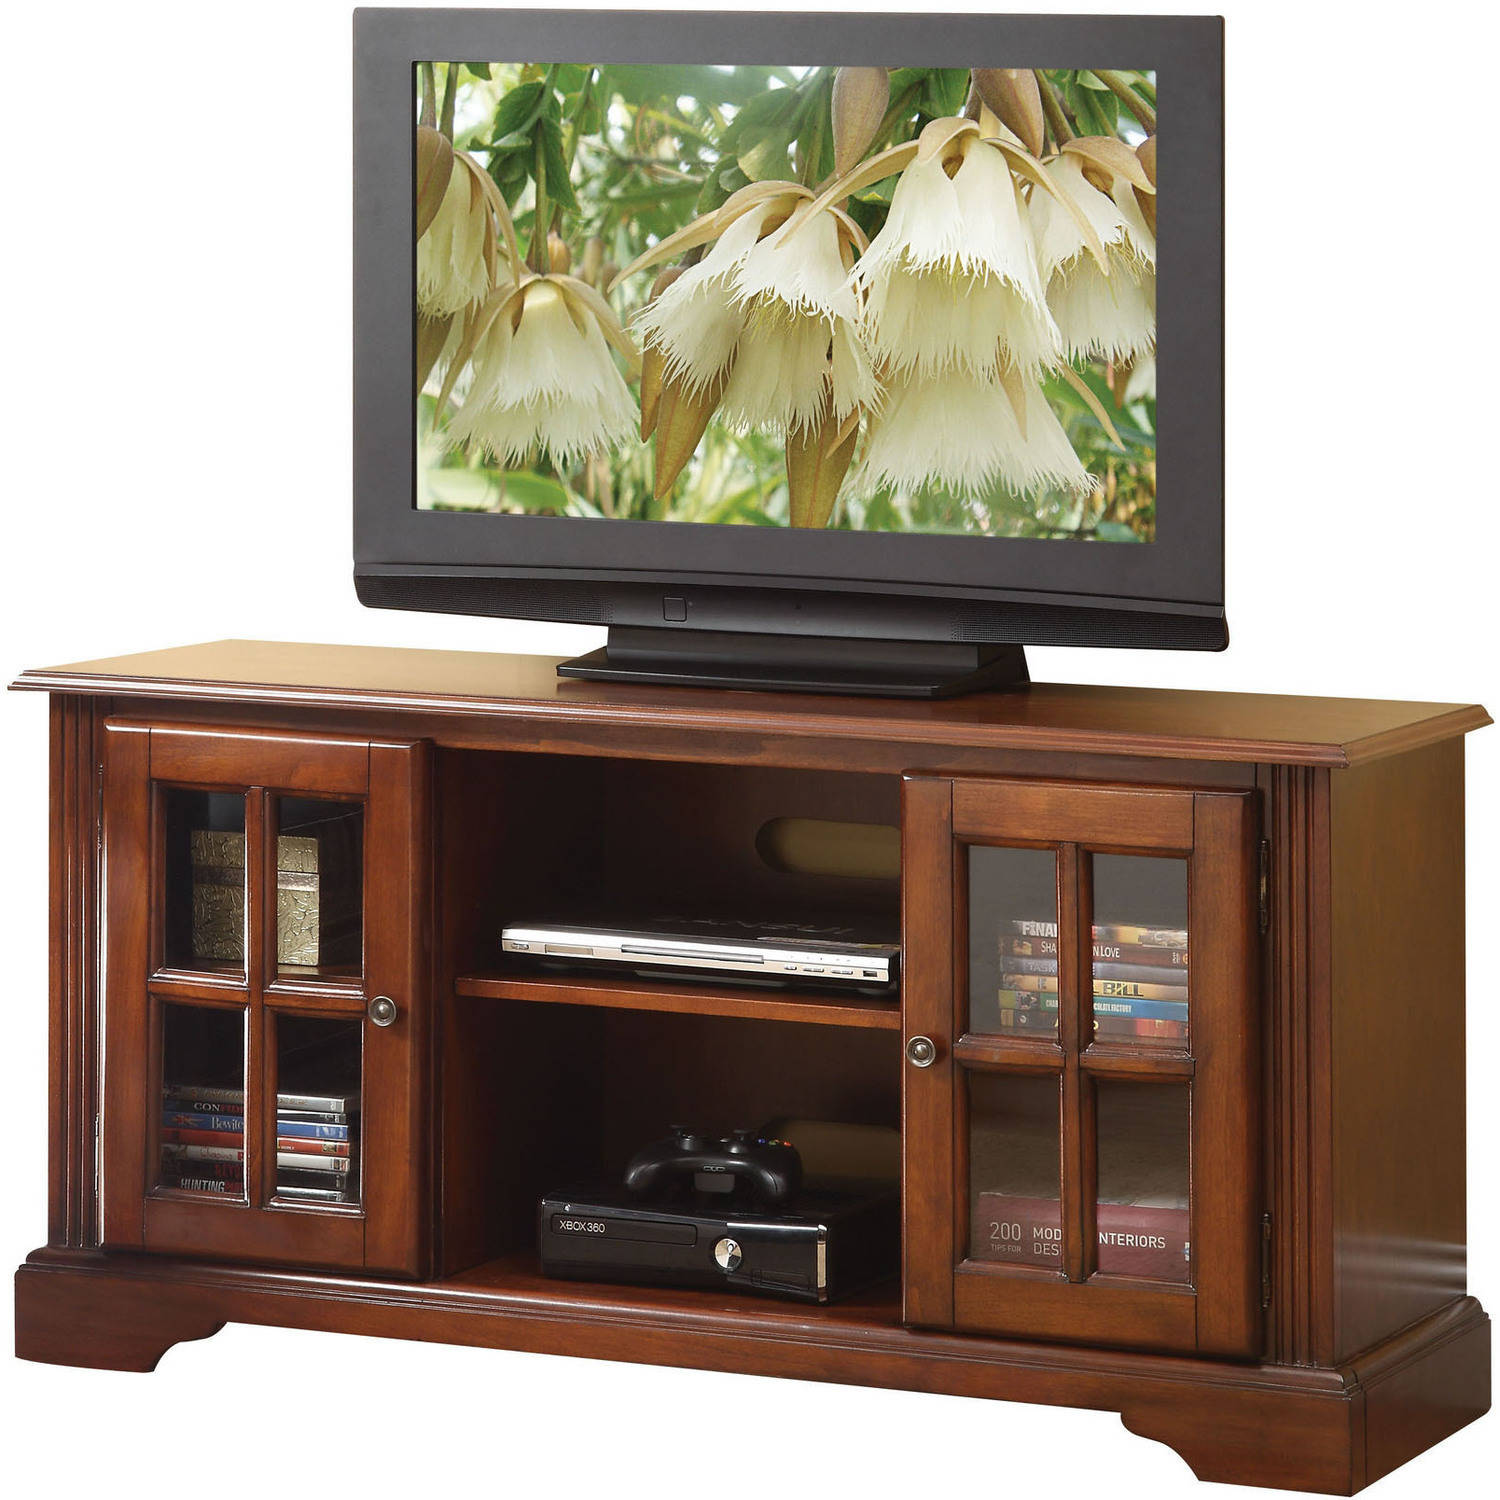 ACME Basma Cherry TV Stand for Flat Screen TVs up to 50""